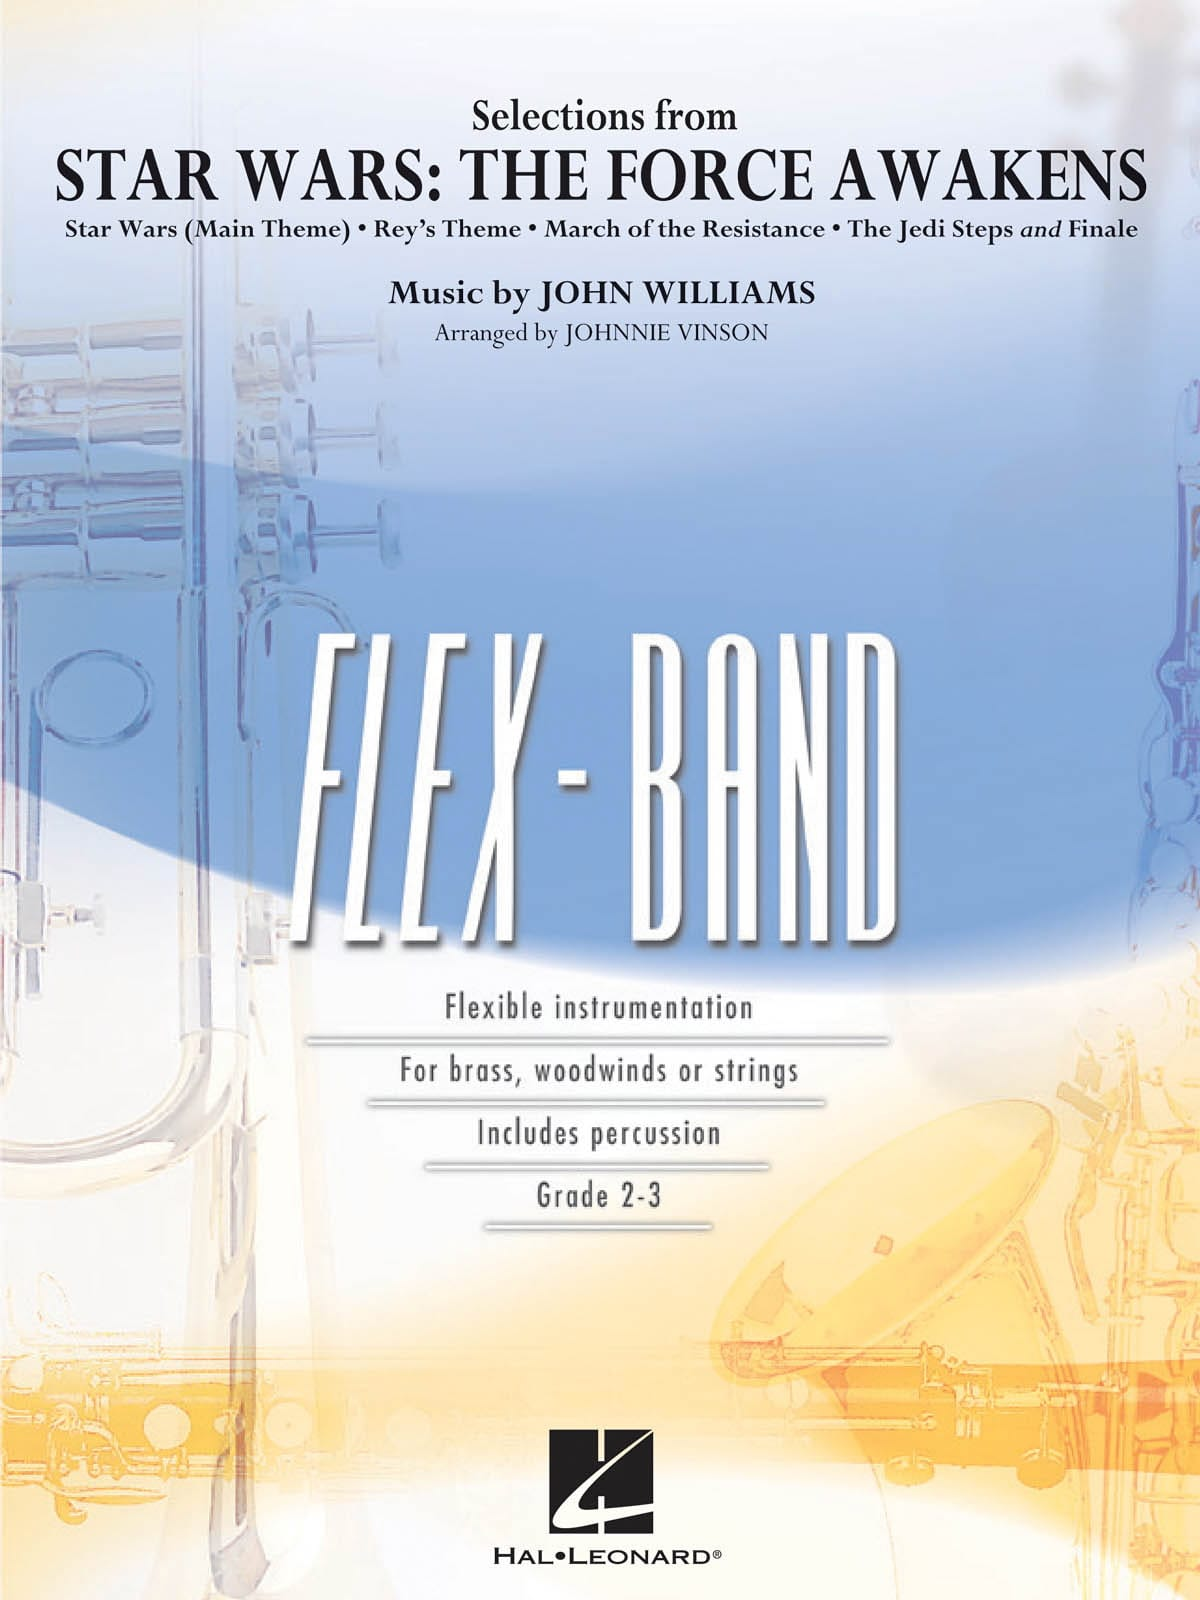 Selections from Star Wars - The Force Awakens - FlexBand - laflutedepan.com